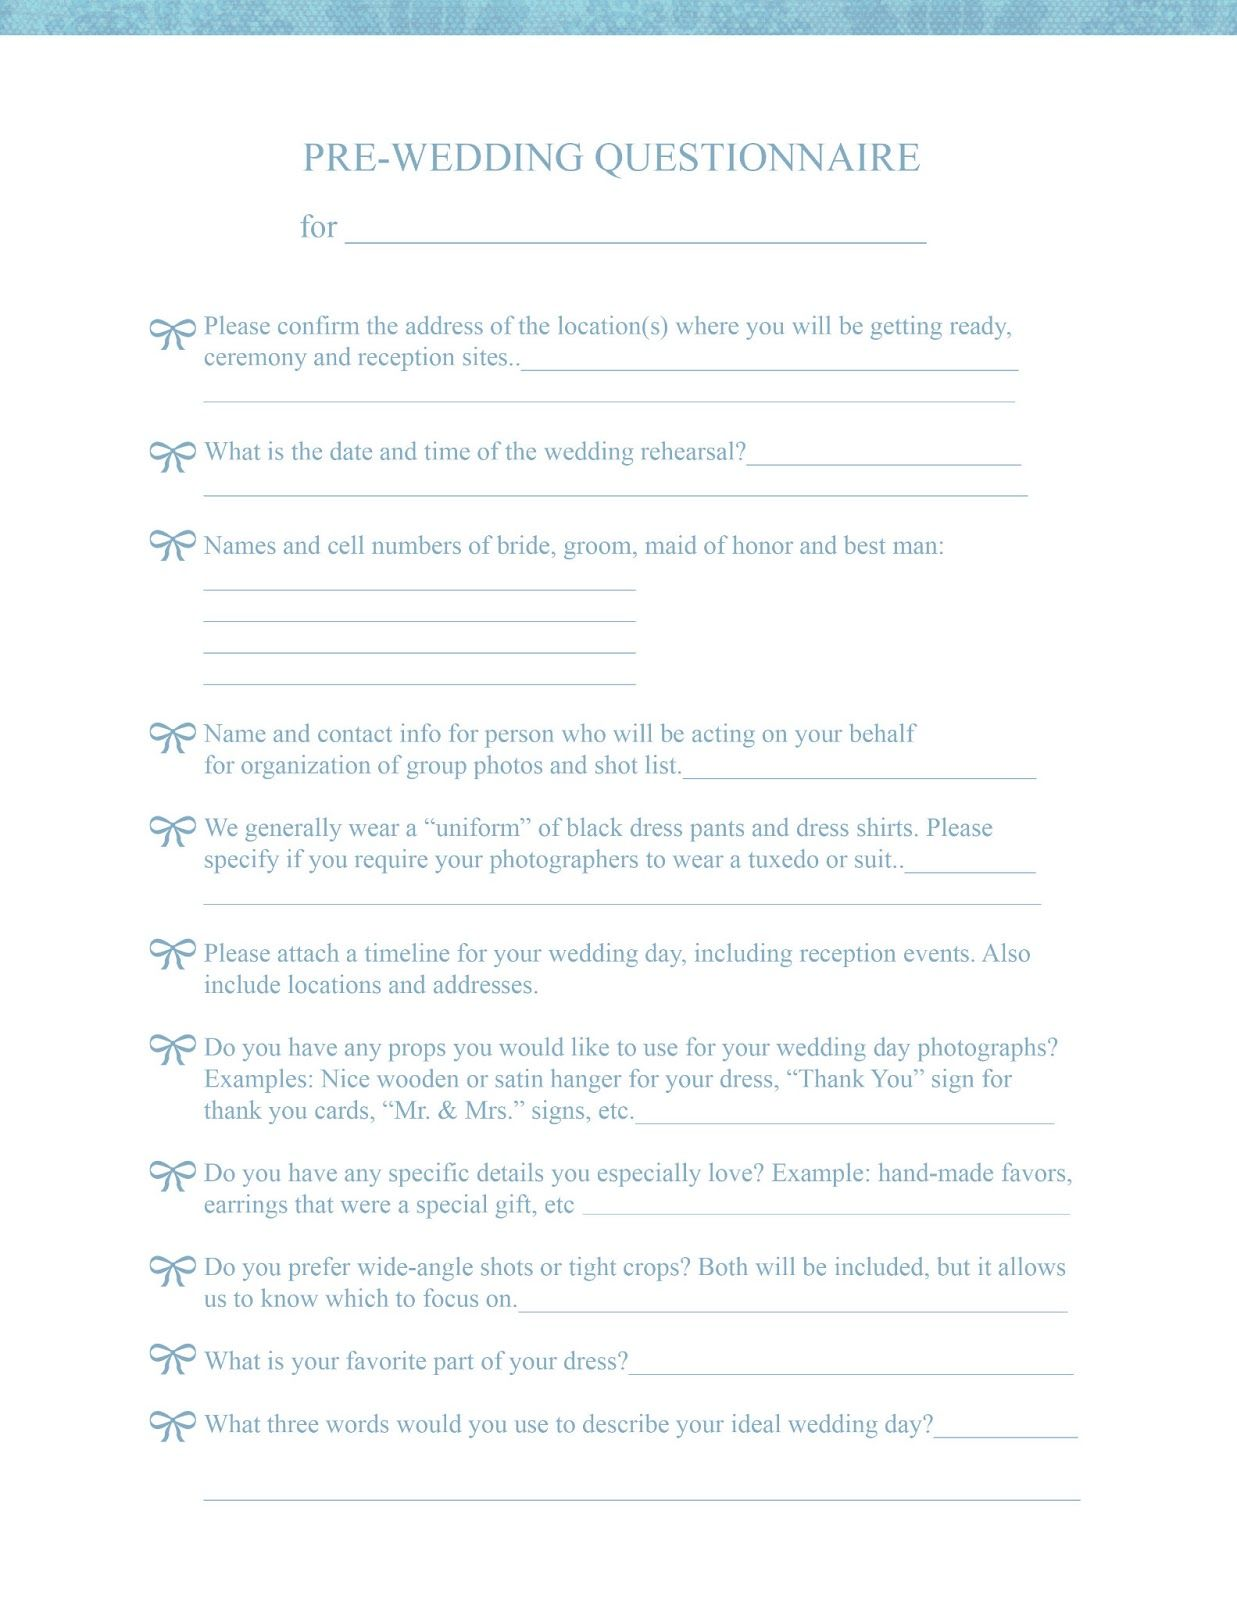 Wedding Photography Checklist For Clients